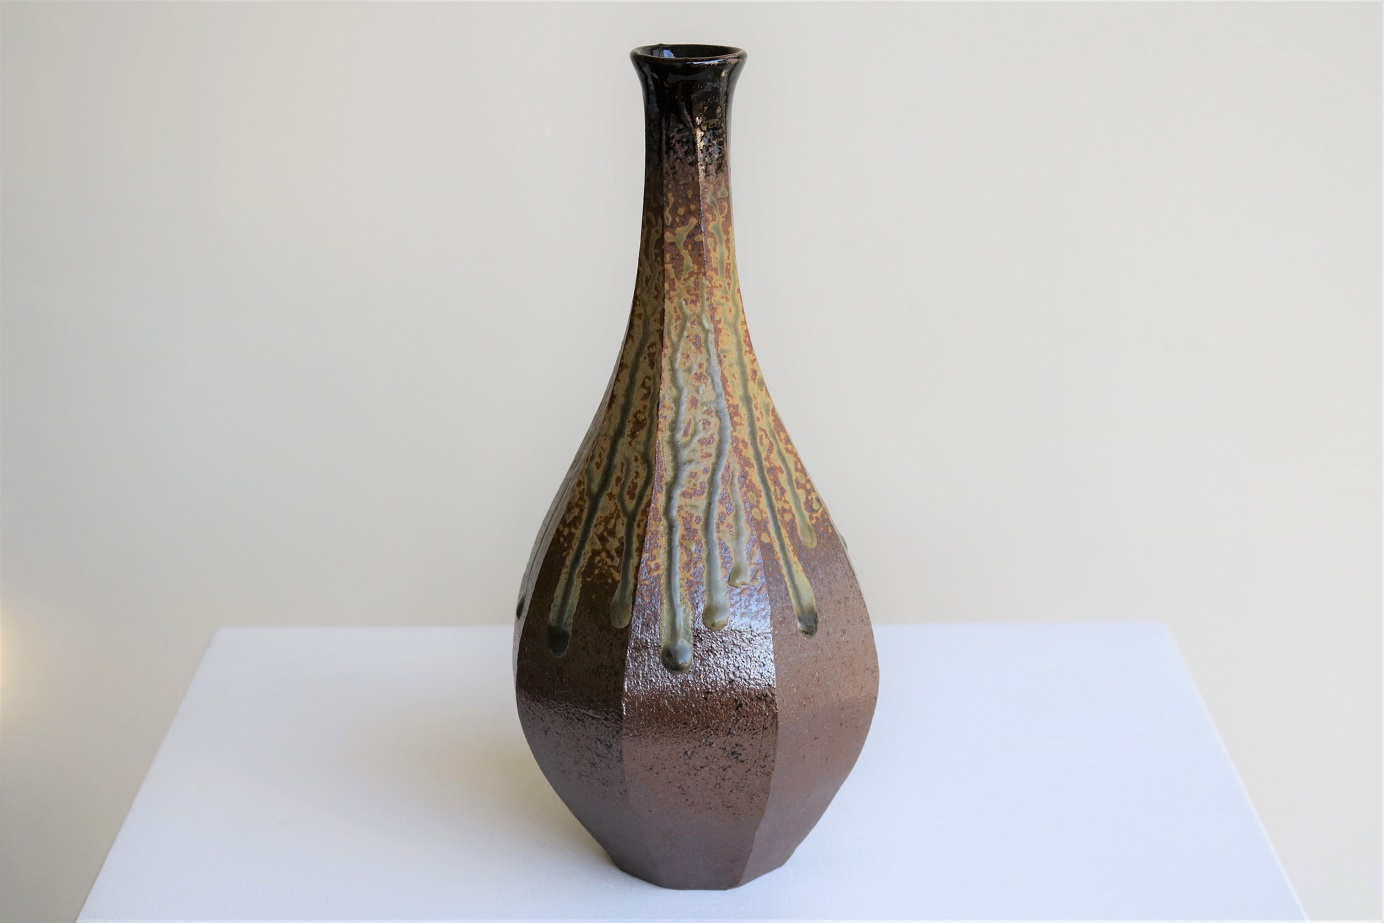 Terunobu Hirata,  Facetted Tall Neck Bottle,  stoneware, ash glaze, H28cm, 2017 AVAILABLE